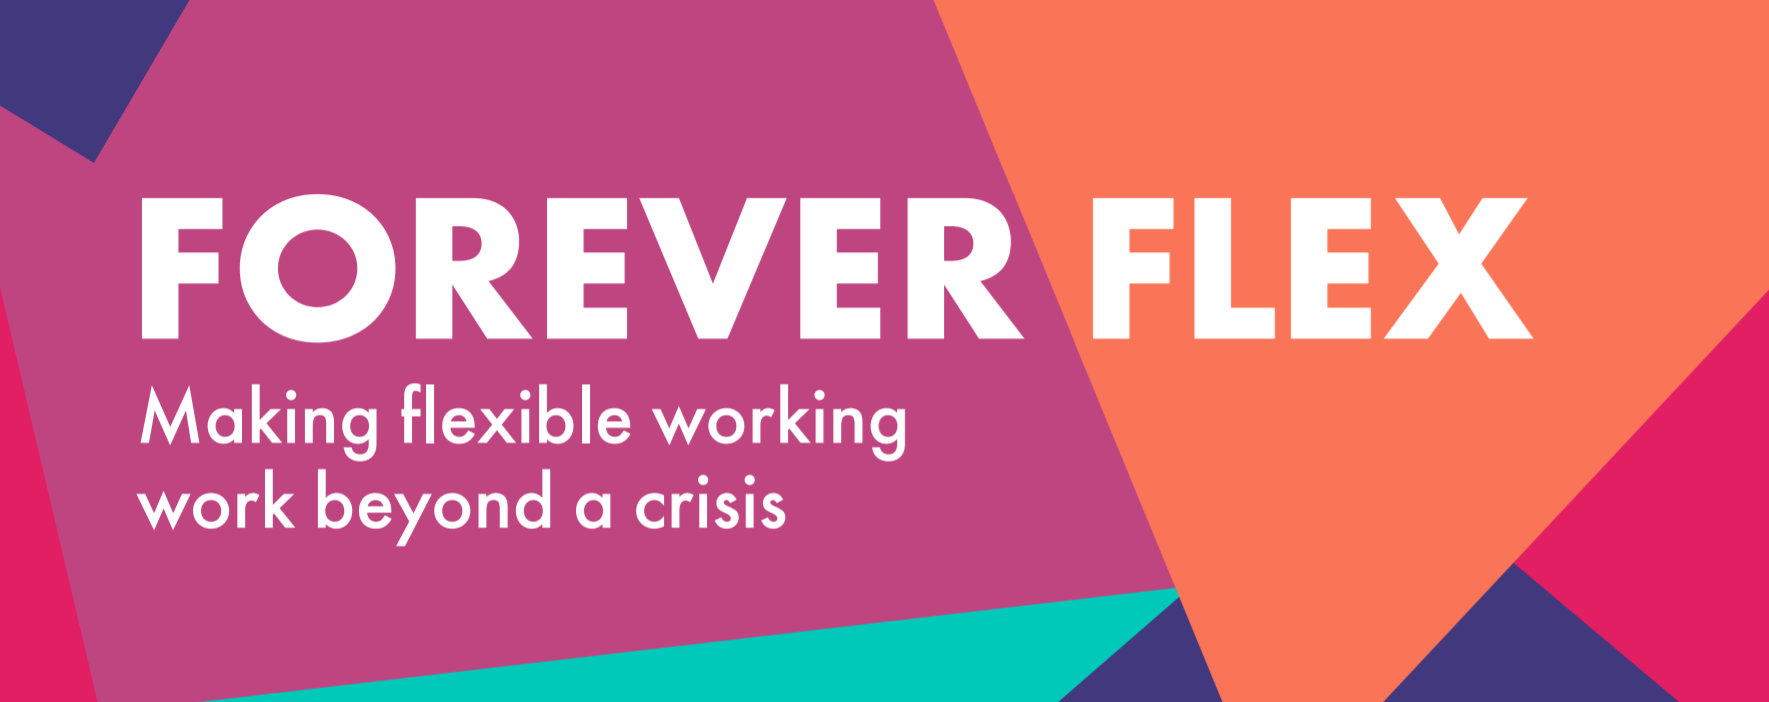 FOREVER FLEX Making flexible working work beyond a crisis